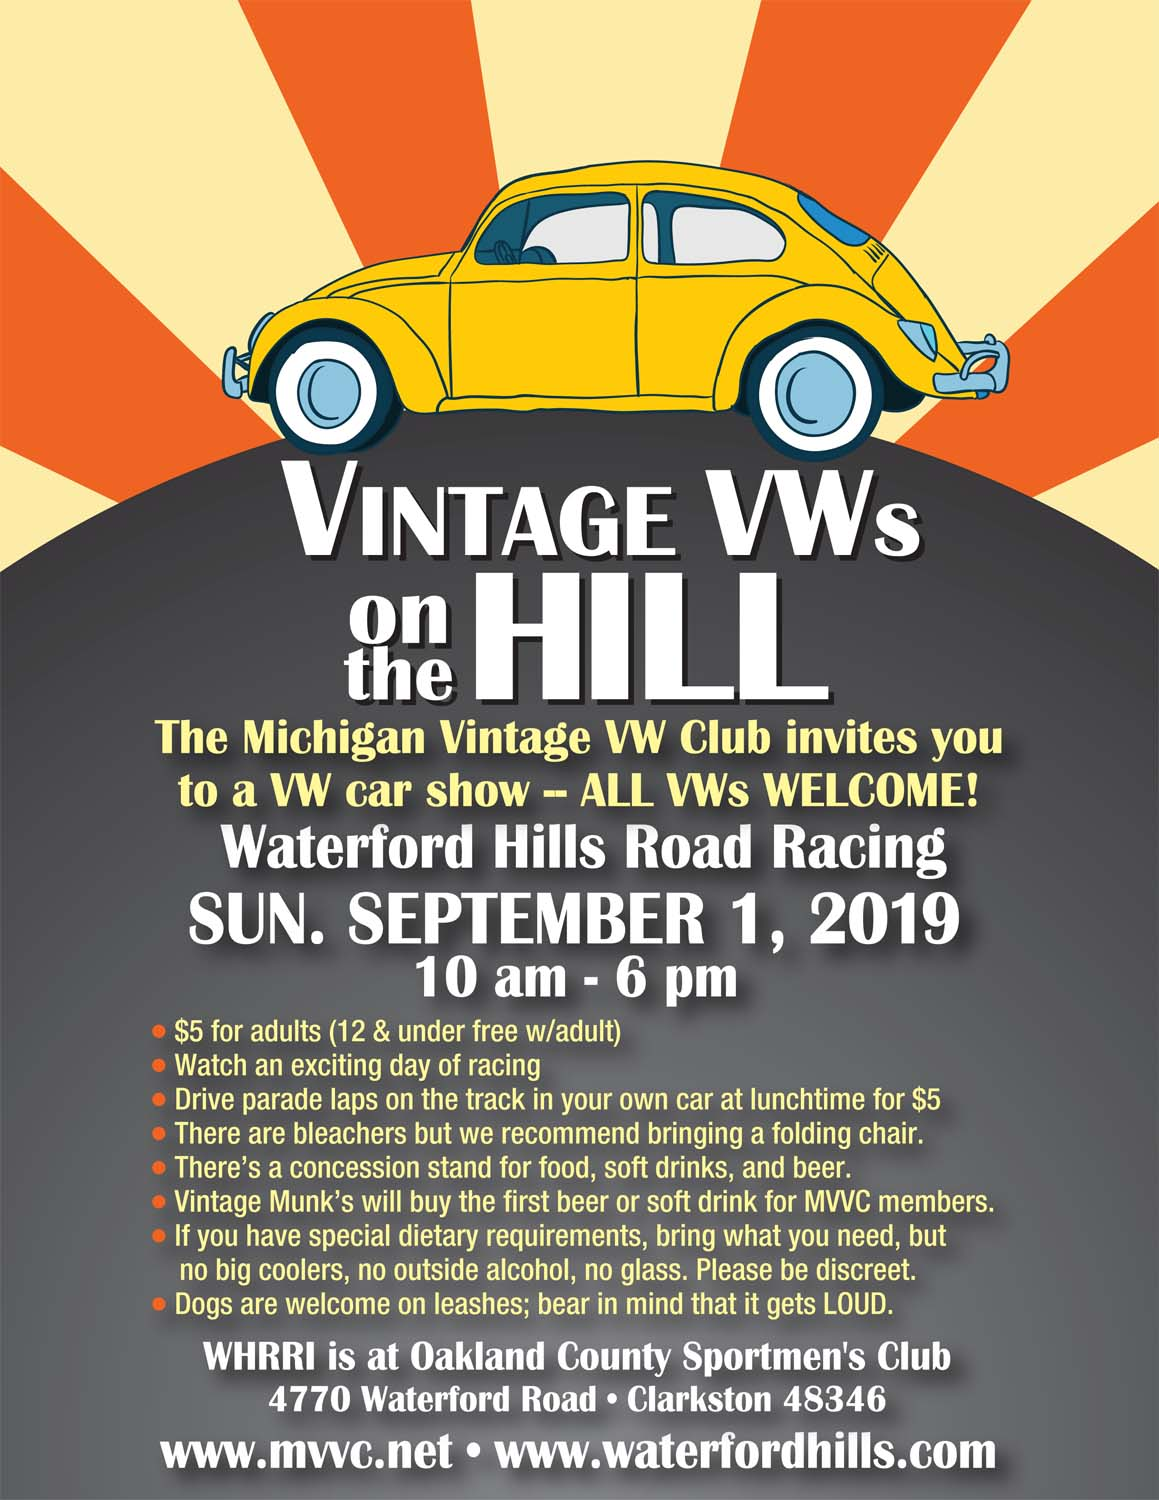 Vintage VWs on the Hill